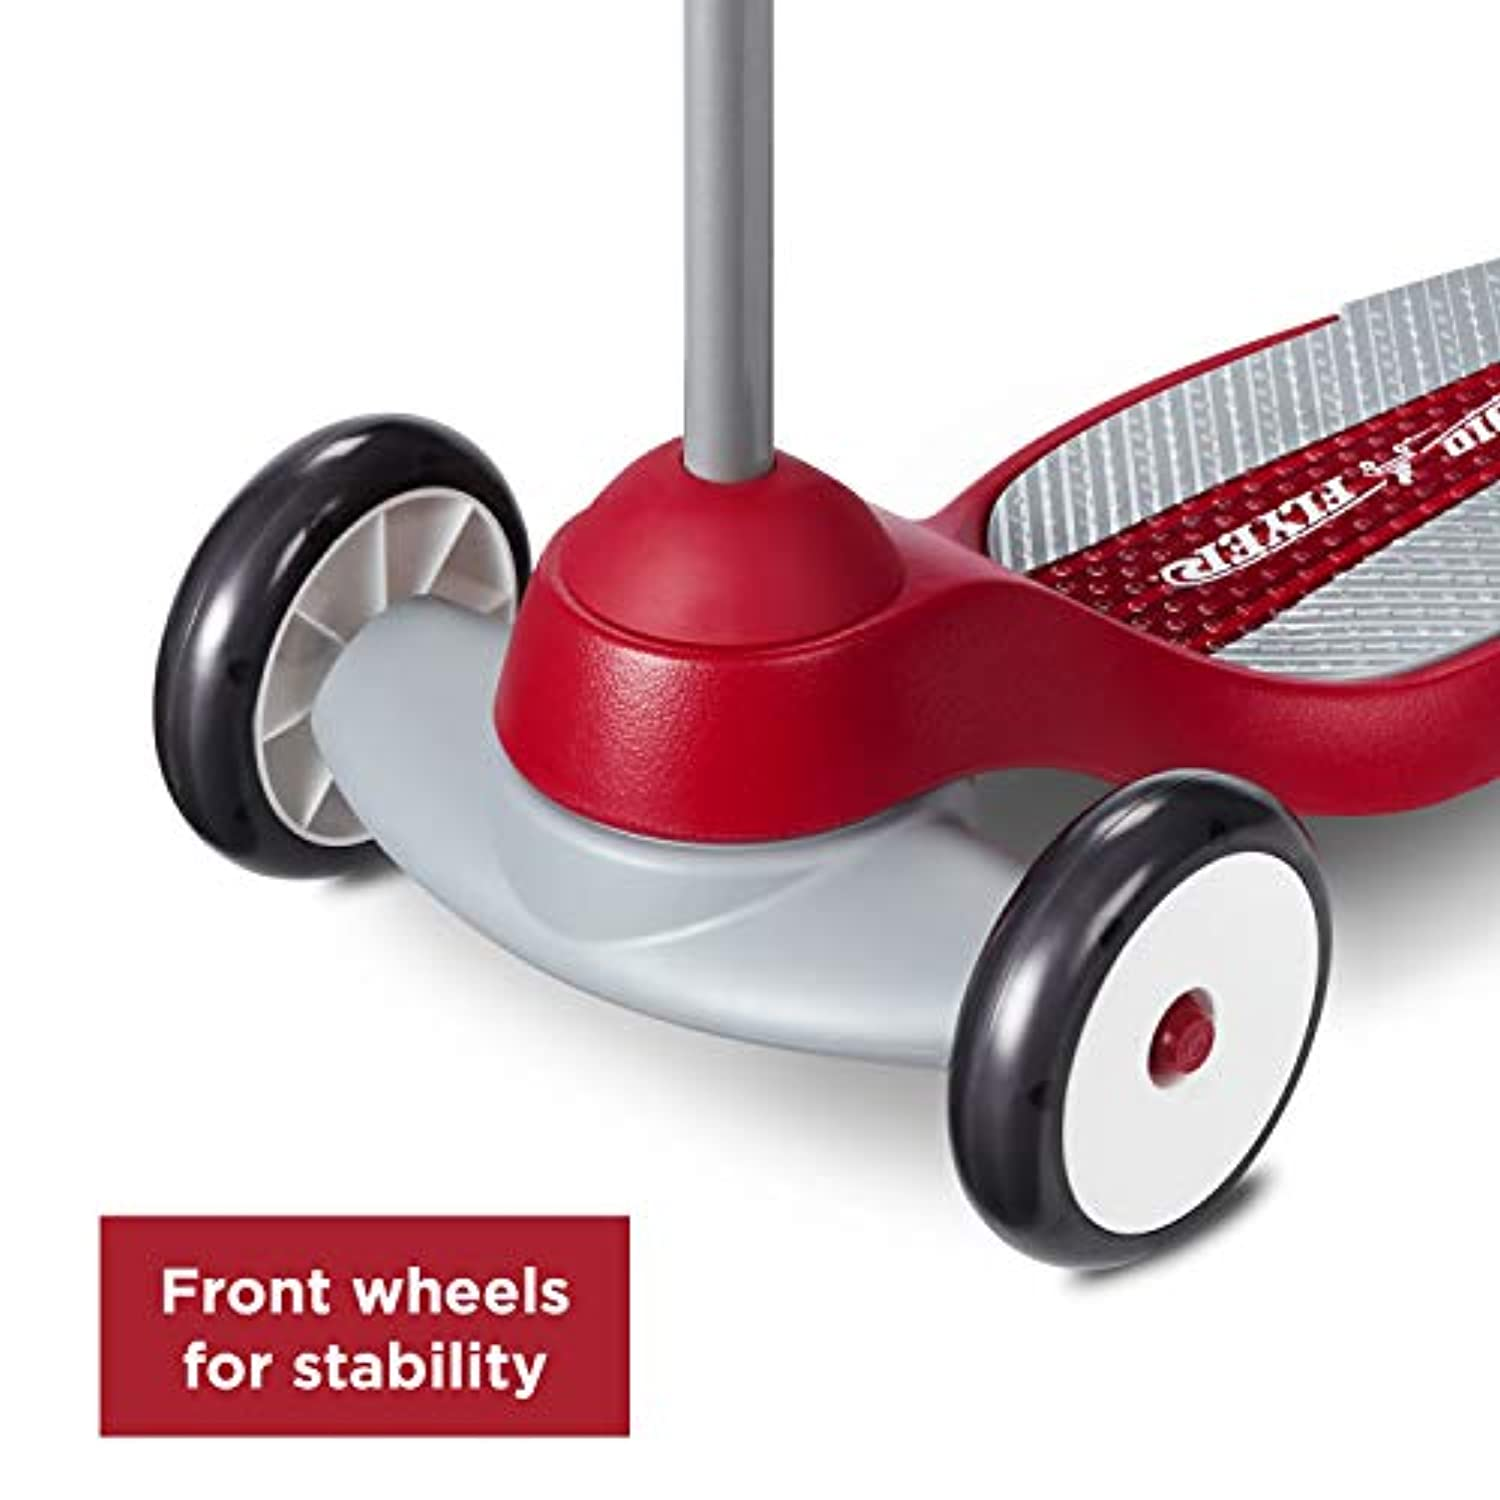 Classier: Buy Radio Flyer Radio Flyer My 1st Scooter, toddler toy for ages 2-5 (Amazon Exclusive)